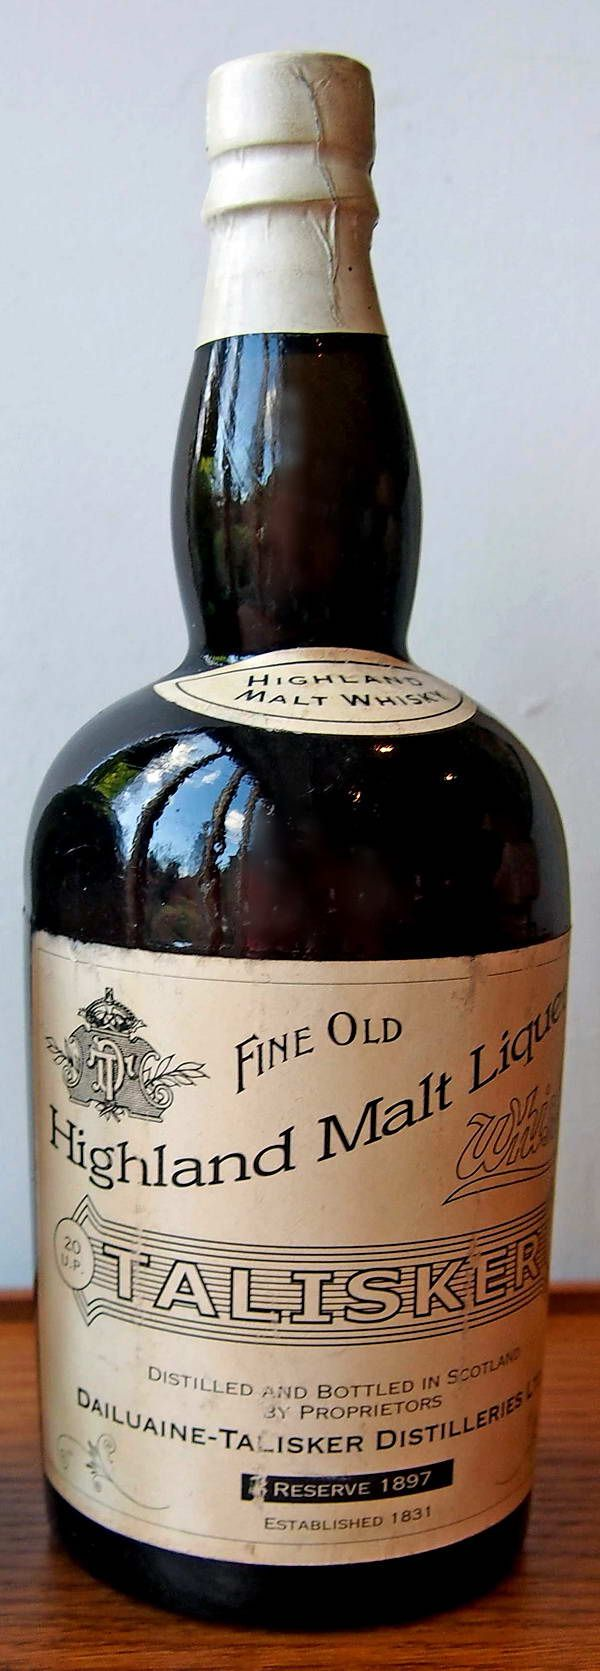 Vintage Scotch Whisky from Finest & Rarest